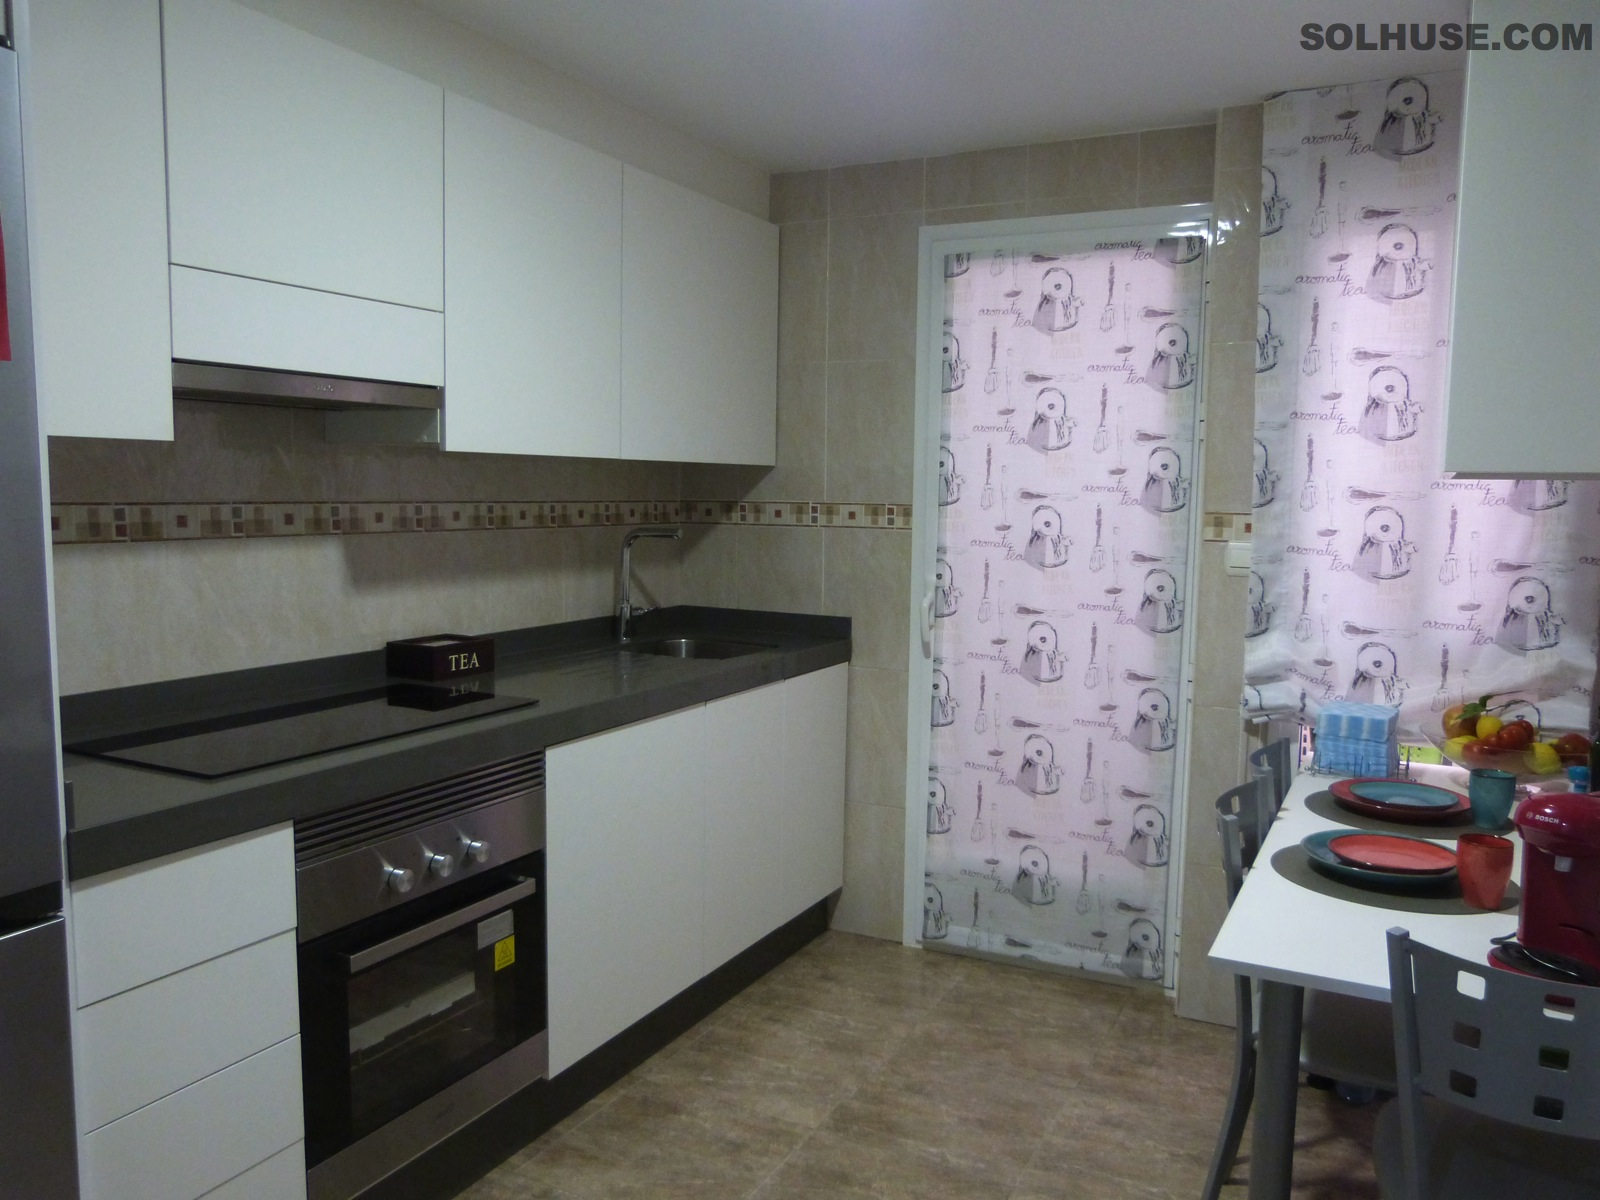 IMMACULATE SPACIOIUS 3 BEDROOM APARTMENT CLOSE TO ALL AMENITIES